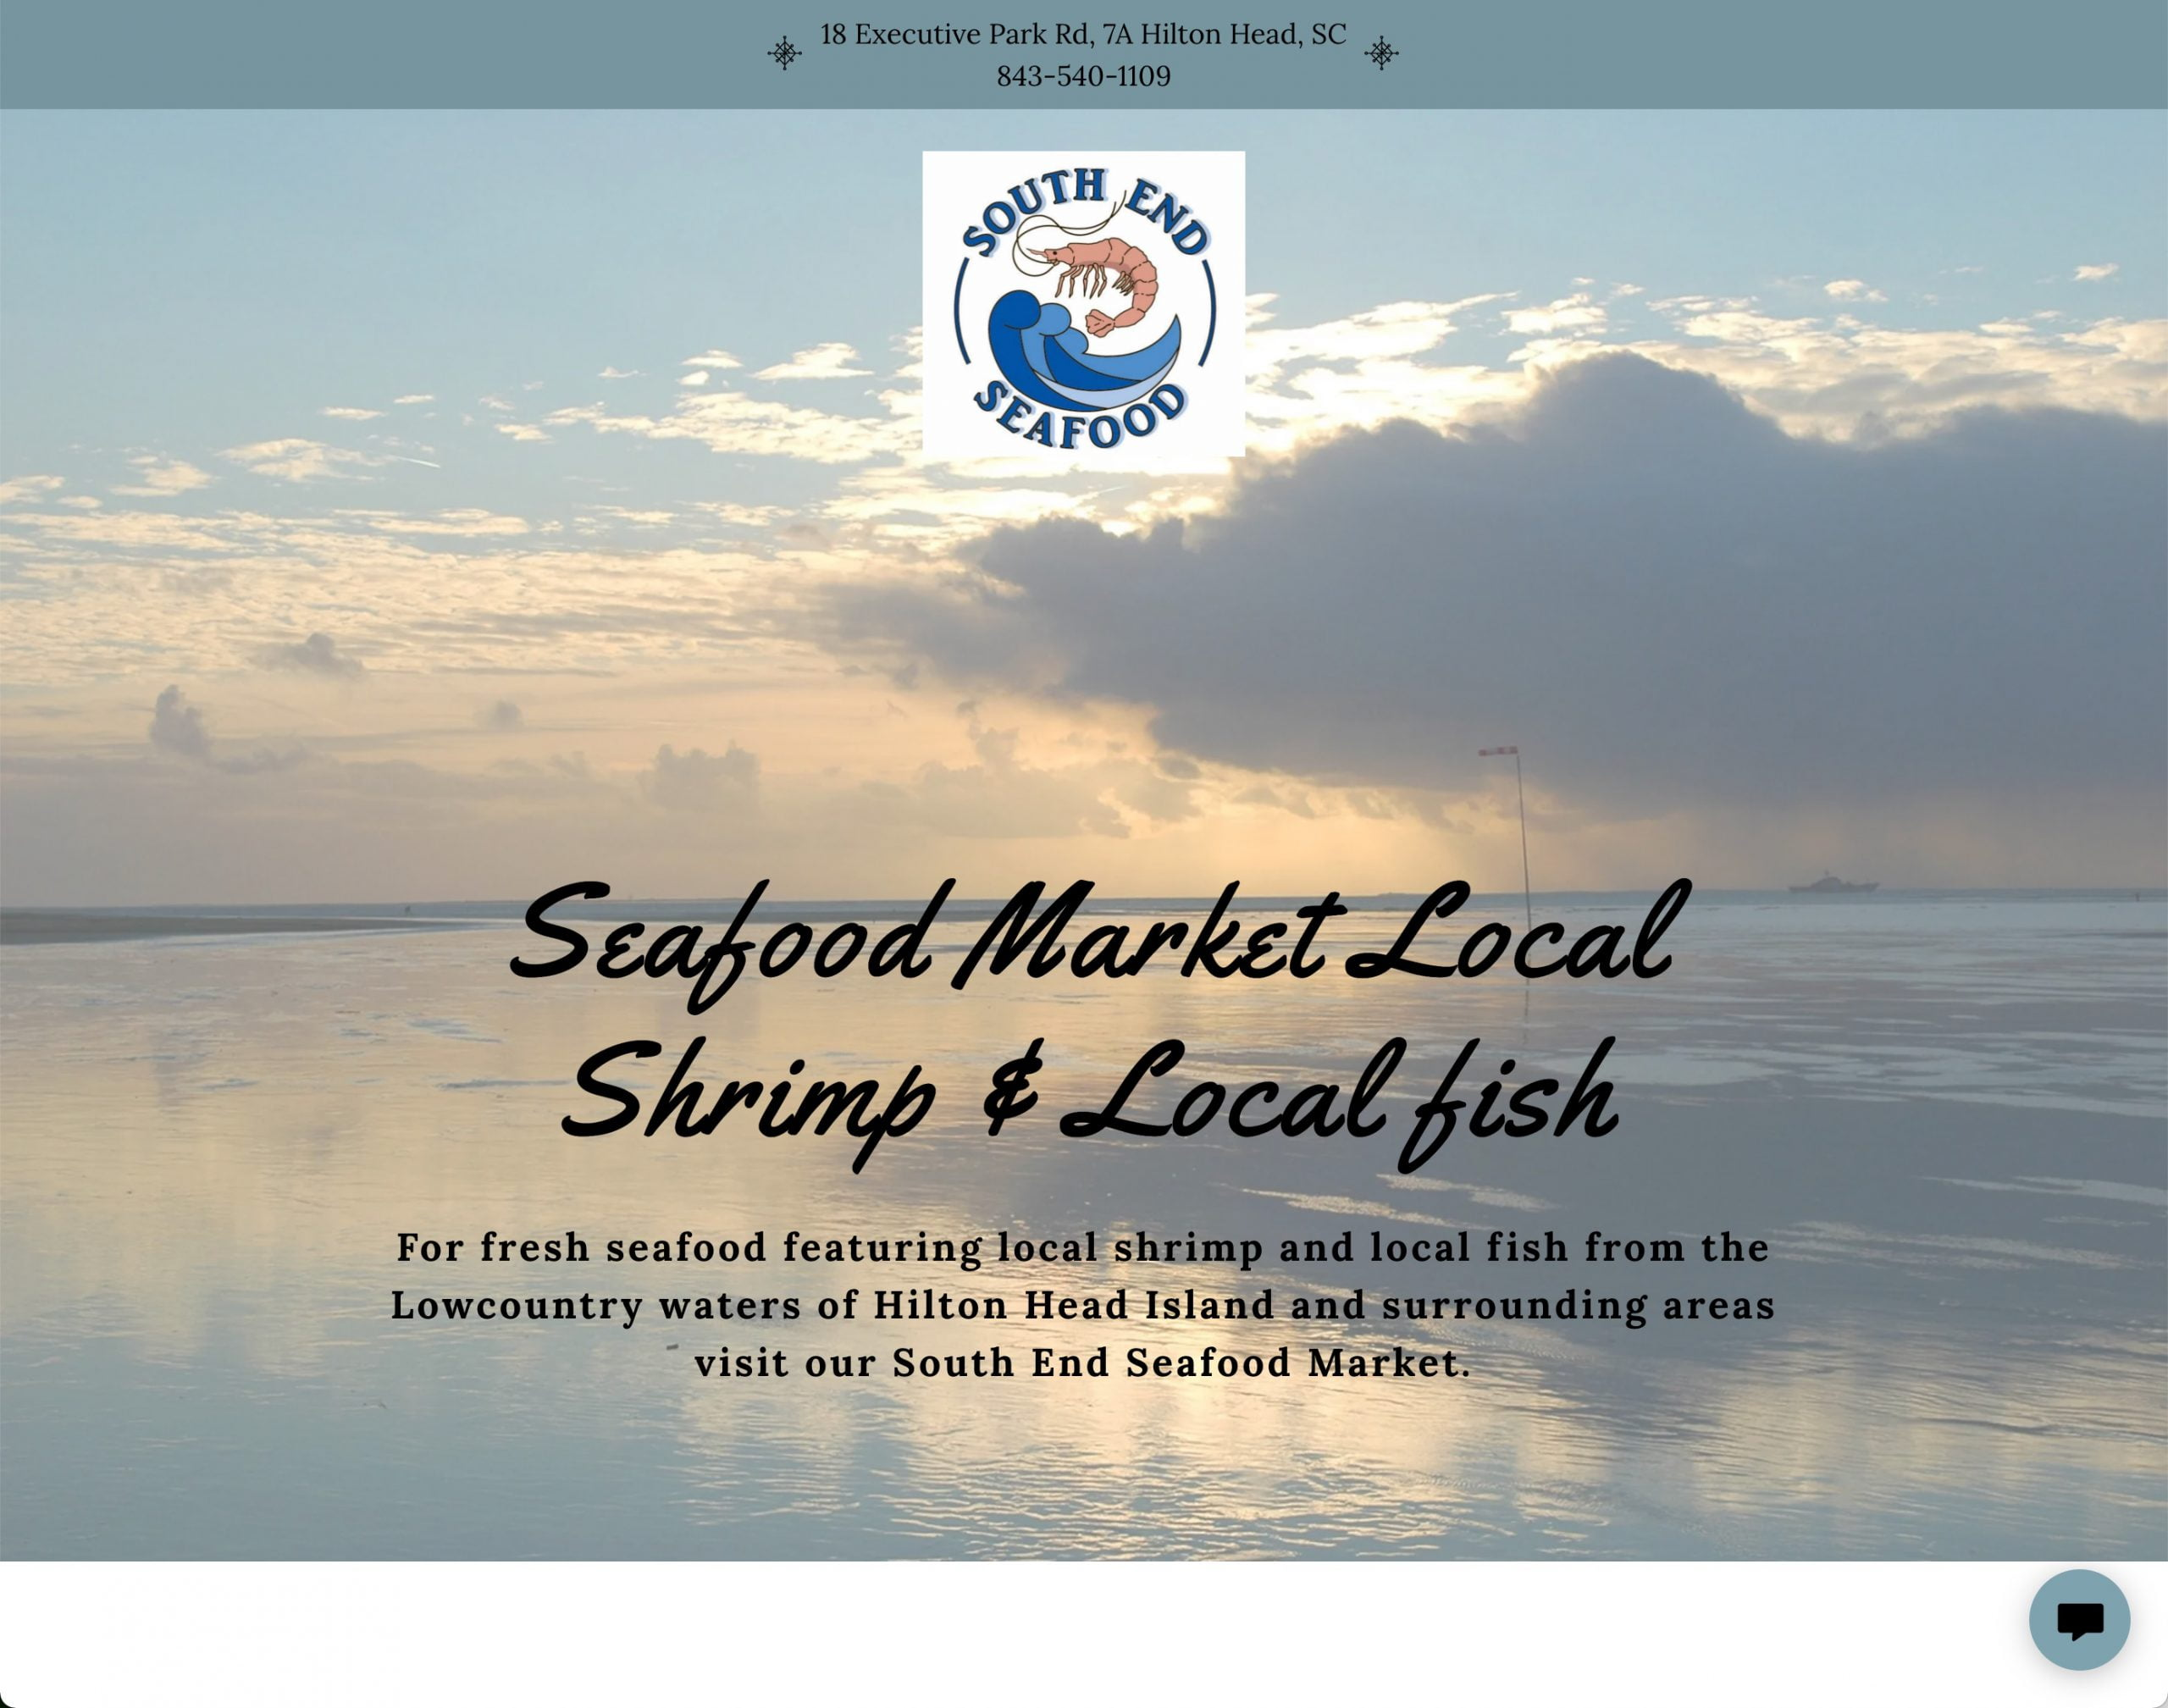 South End Seafood Market